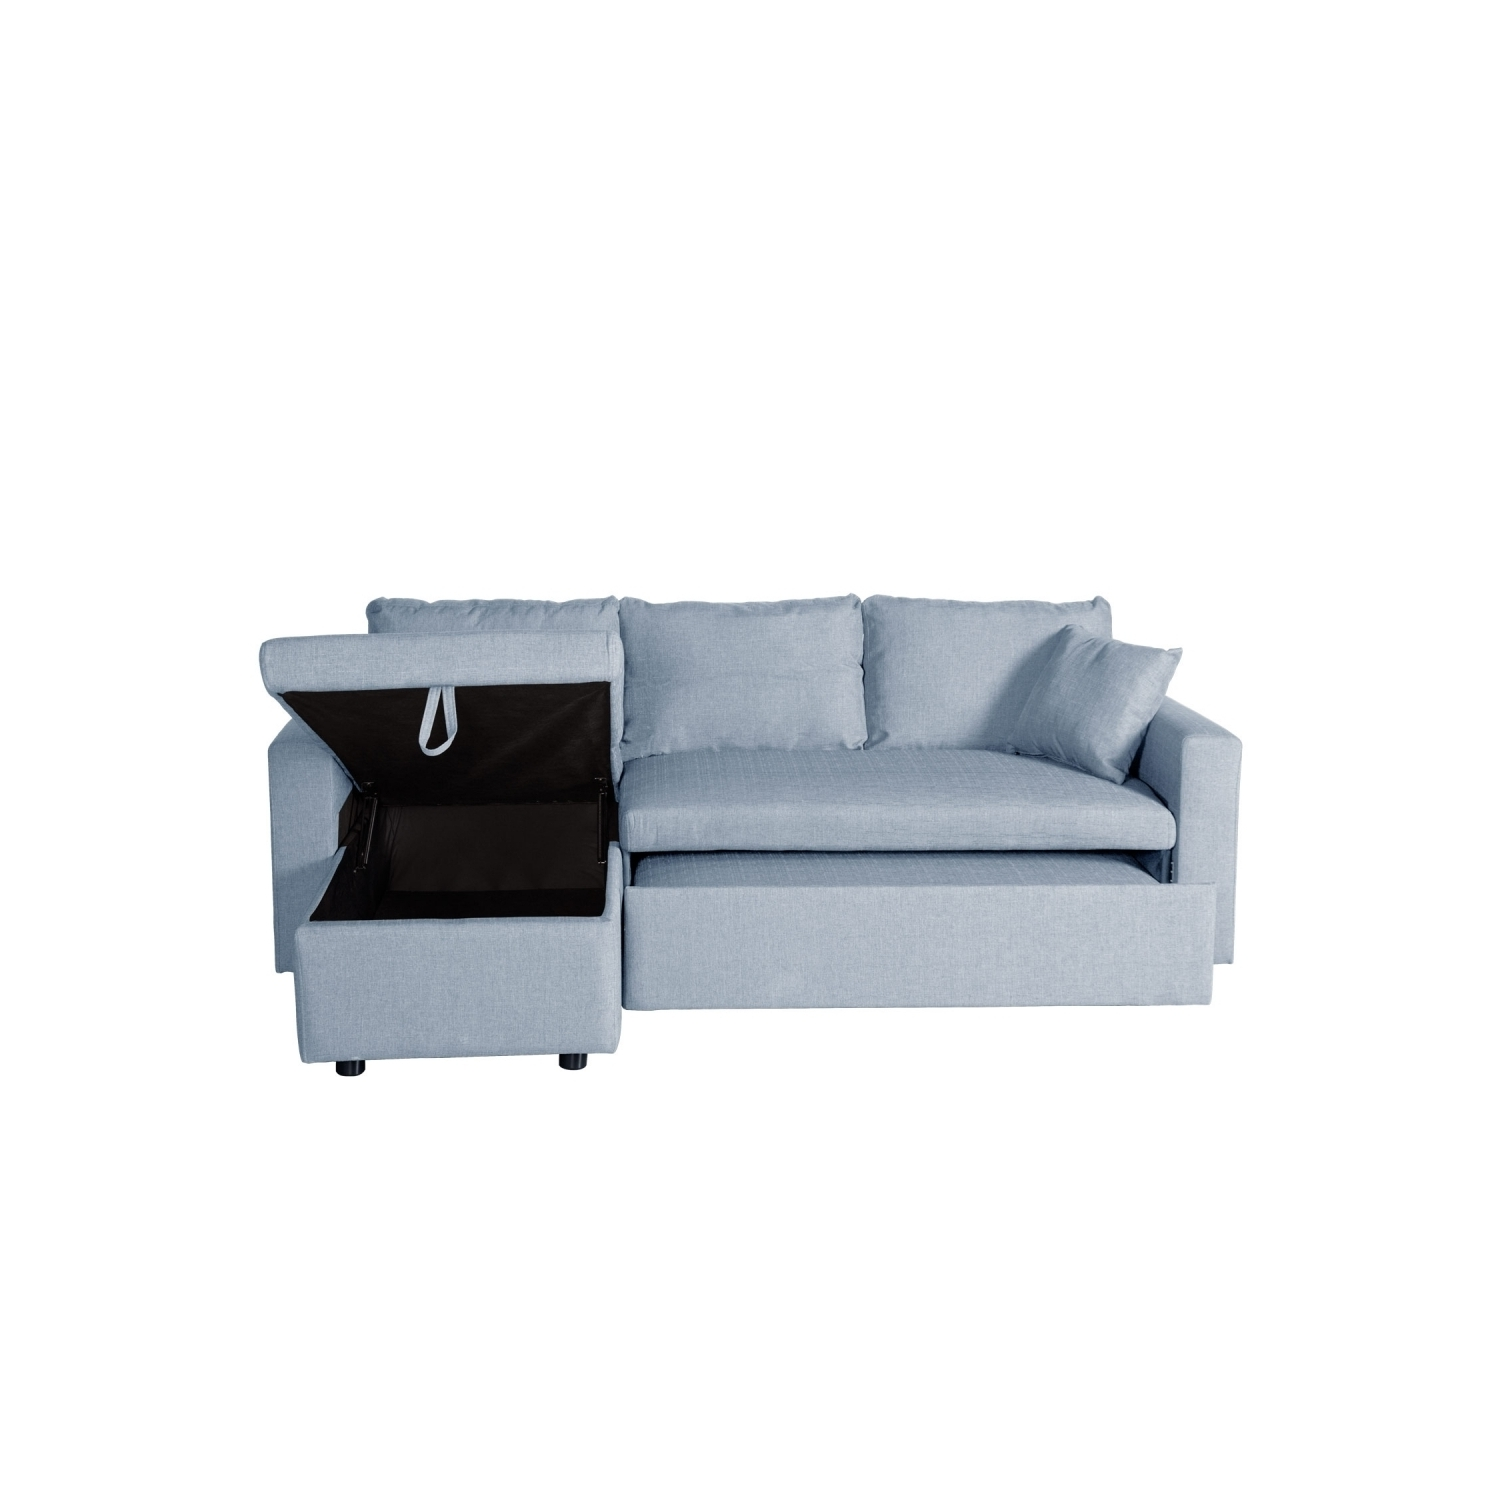 Compra sof cama chaise longue dorothy barato online for Ofertas chaise longue online